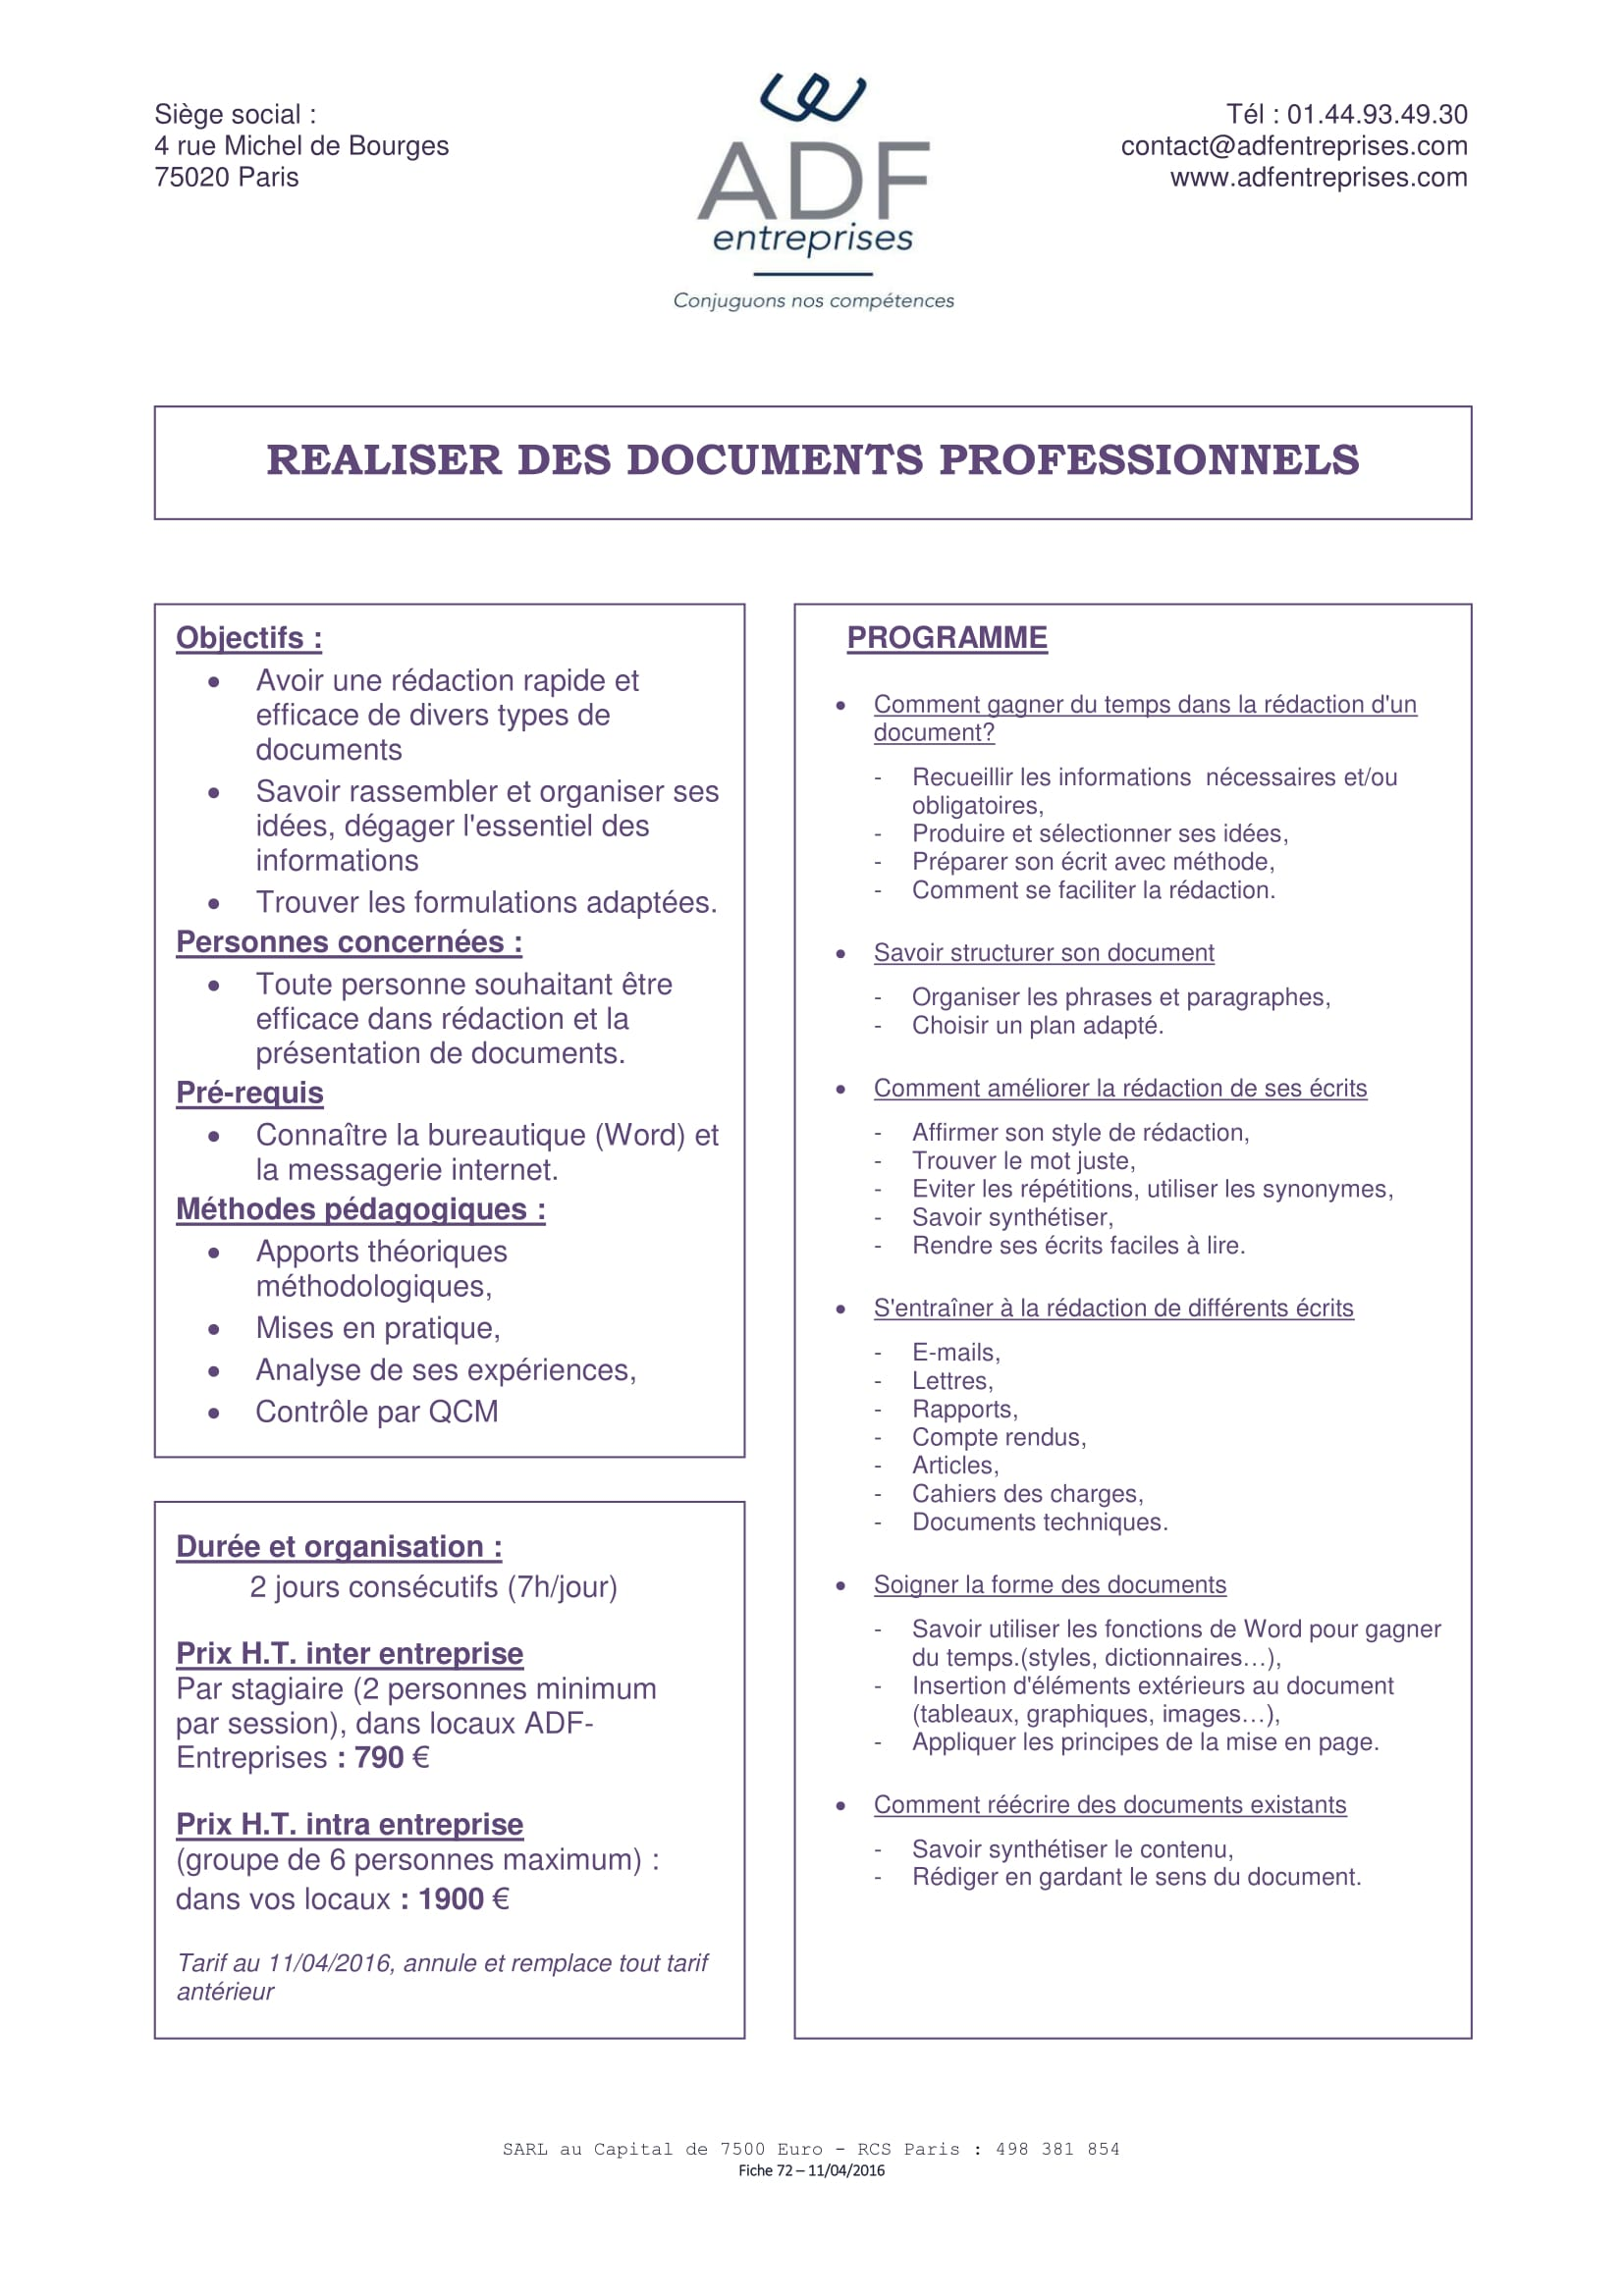 Réaliser des documents professionnels